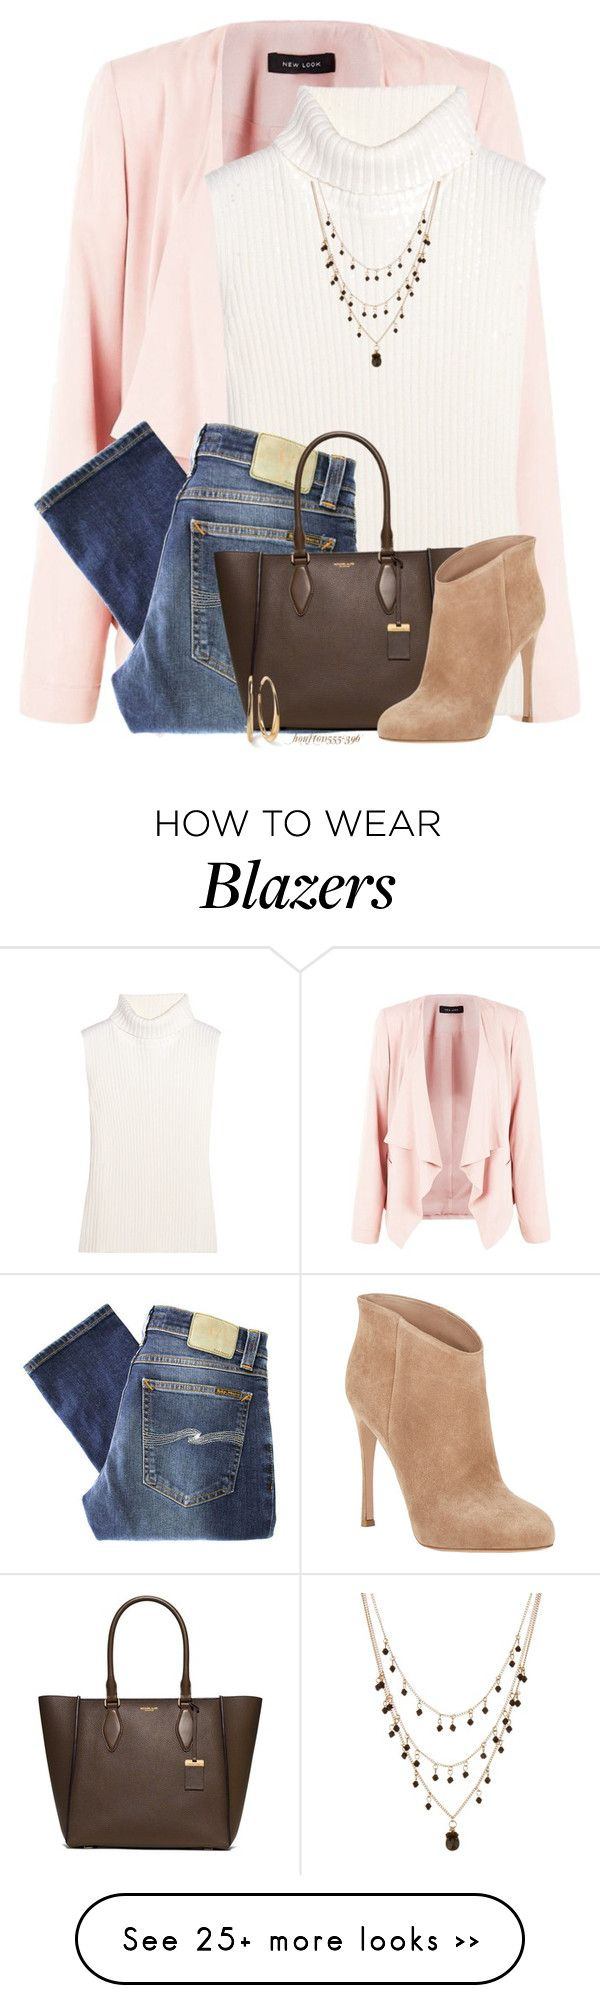 """""""Pink for Fall"""" by houston555-396 on Polyvore featuring moda, 1205, Nudie Jeans Co., Michael Kors, Gianvito Rossi, Nordstrom Rack y Ippolita"""